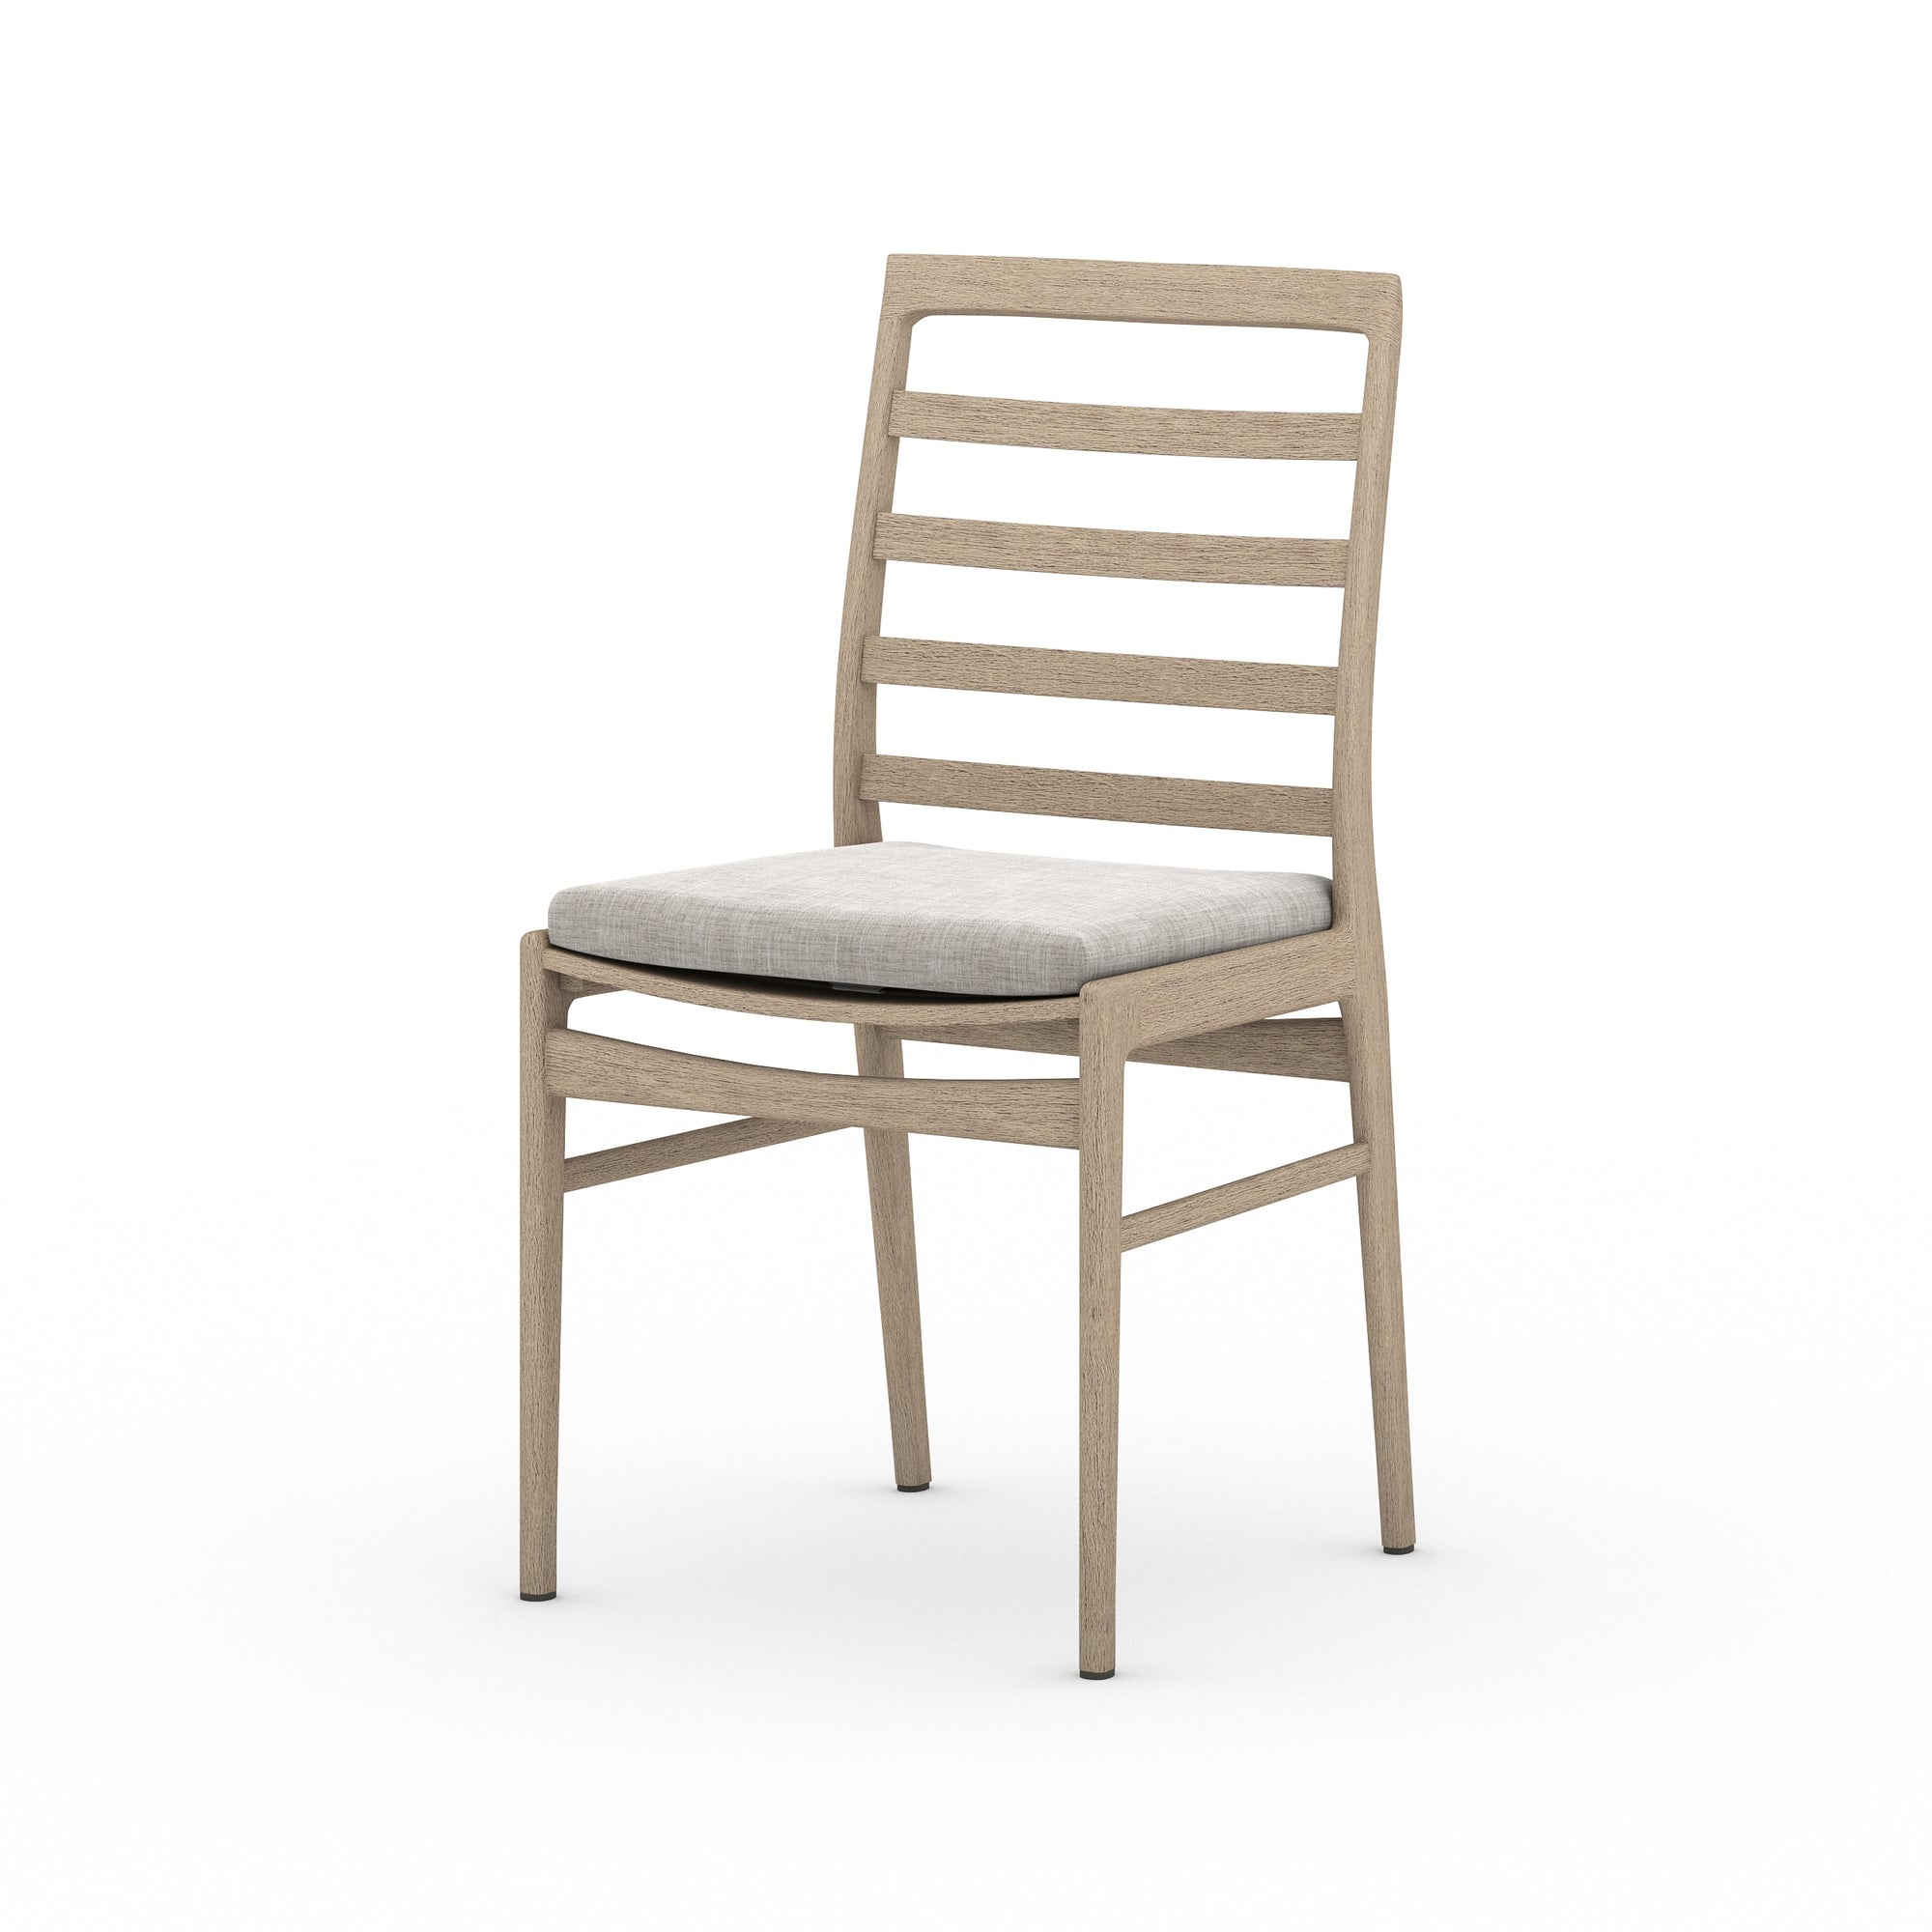 Linnet Outdoor Dining Chair - Brown/Stone